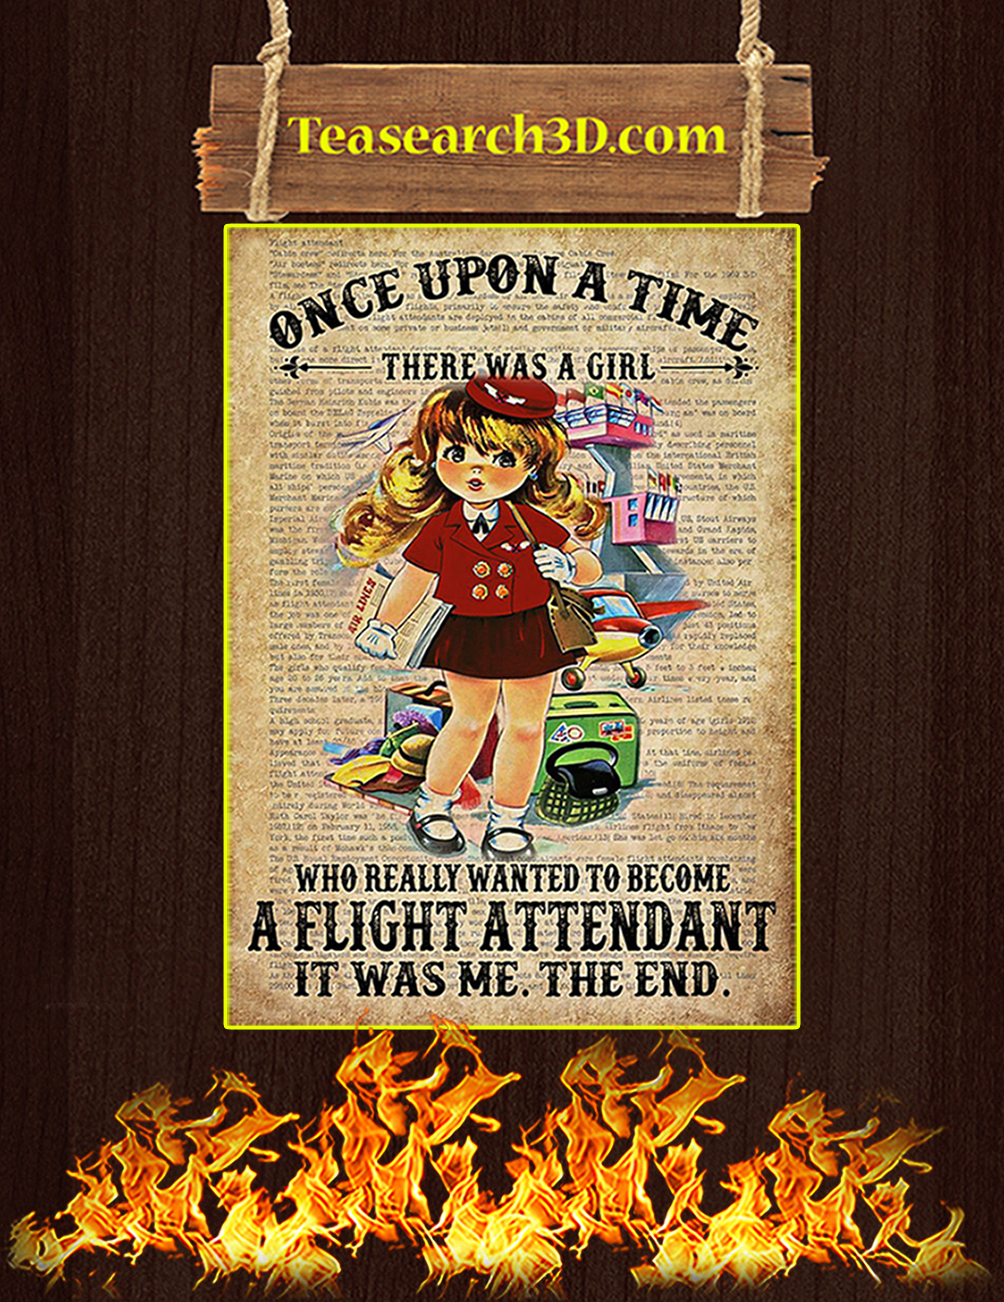 Once upon a time there was a girl who really wanted to become a flight attendant poster 5